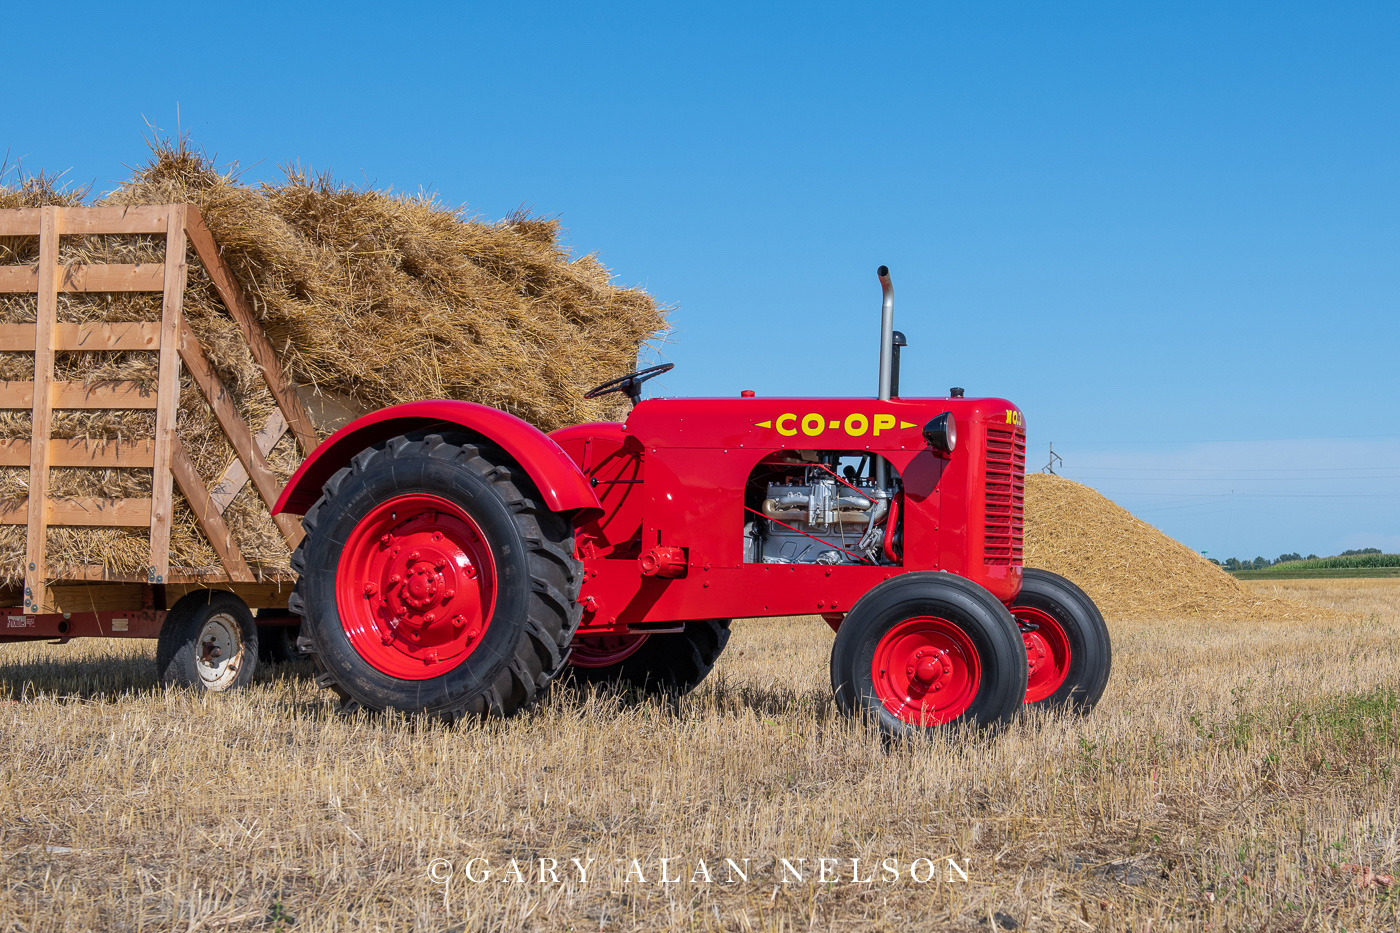 Co-Op, antique tractor, photo